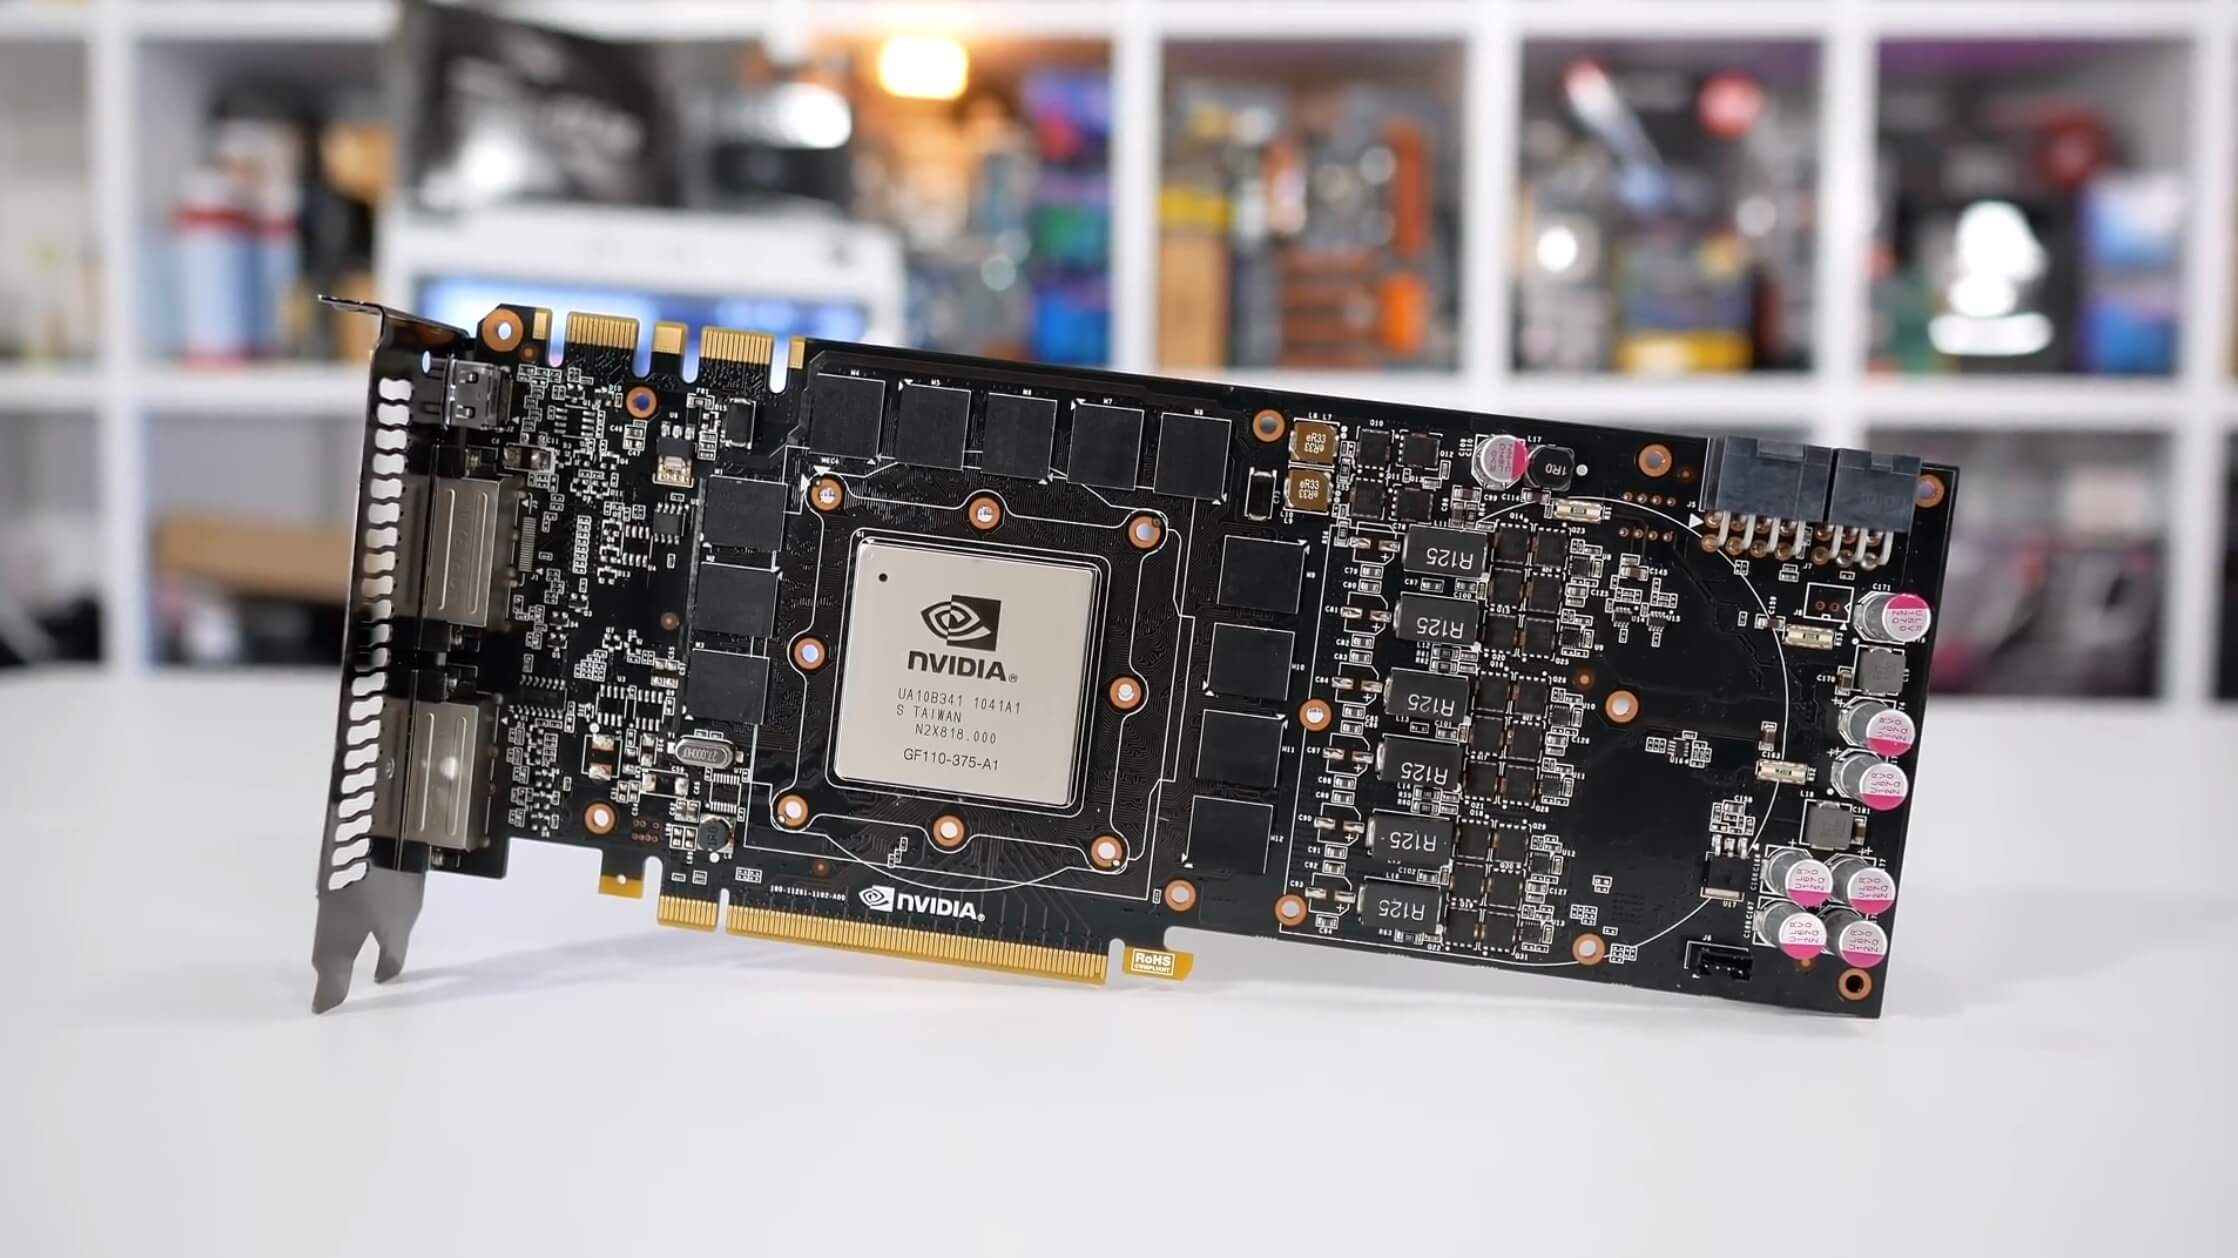 8 Years Later: Does the GeForce GTX 580 Still Have Game in 2018